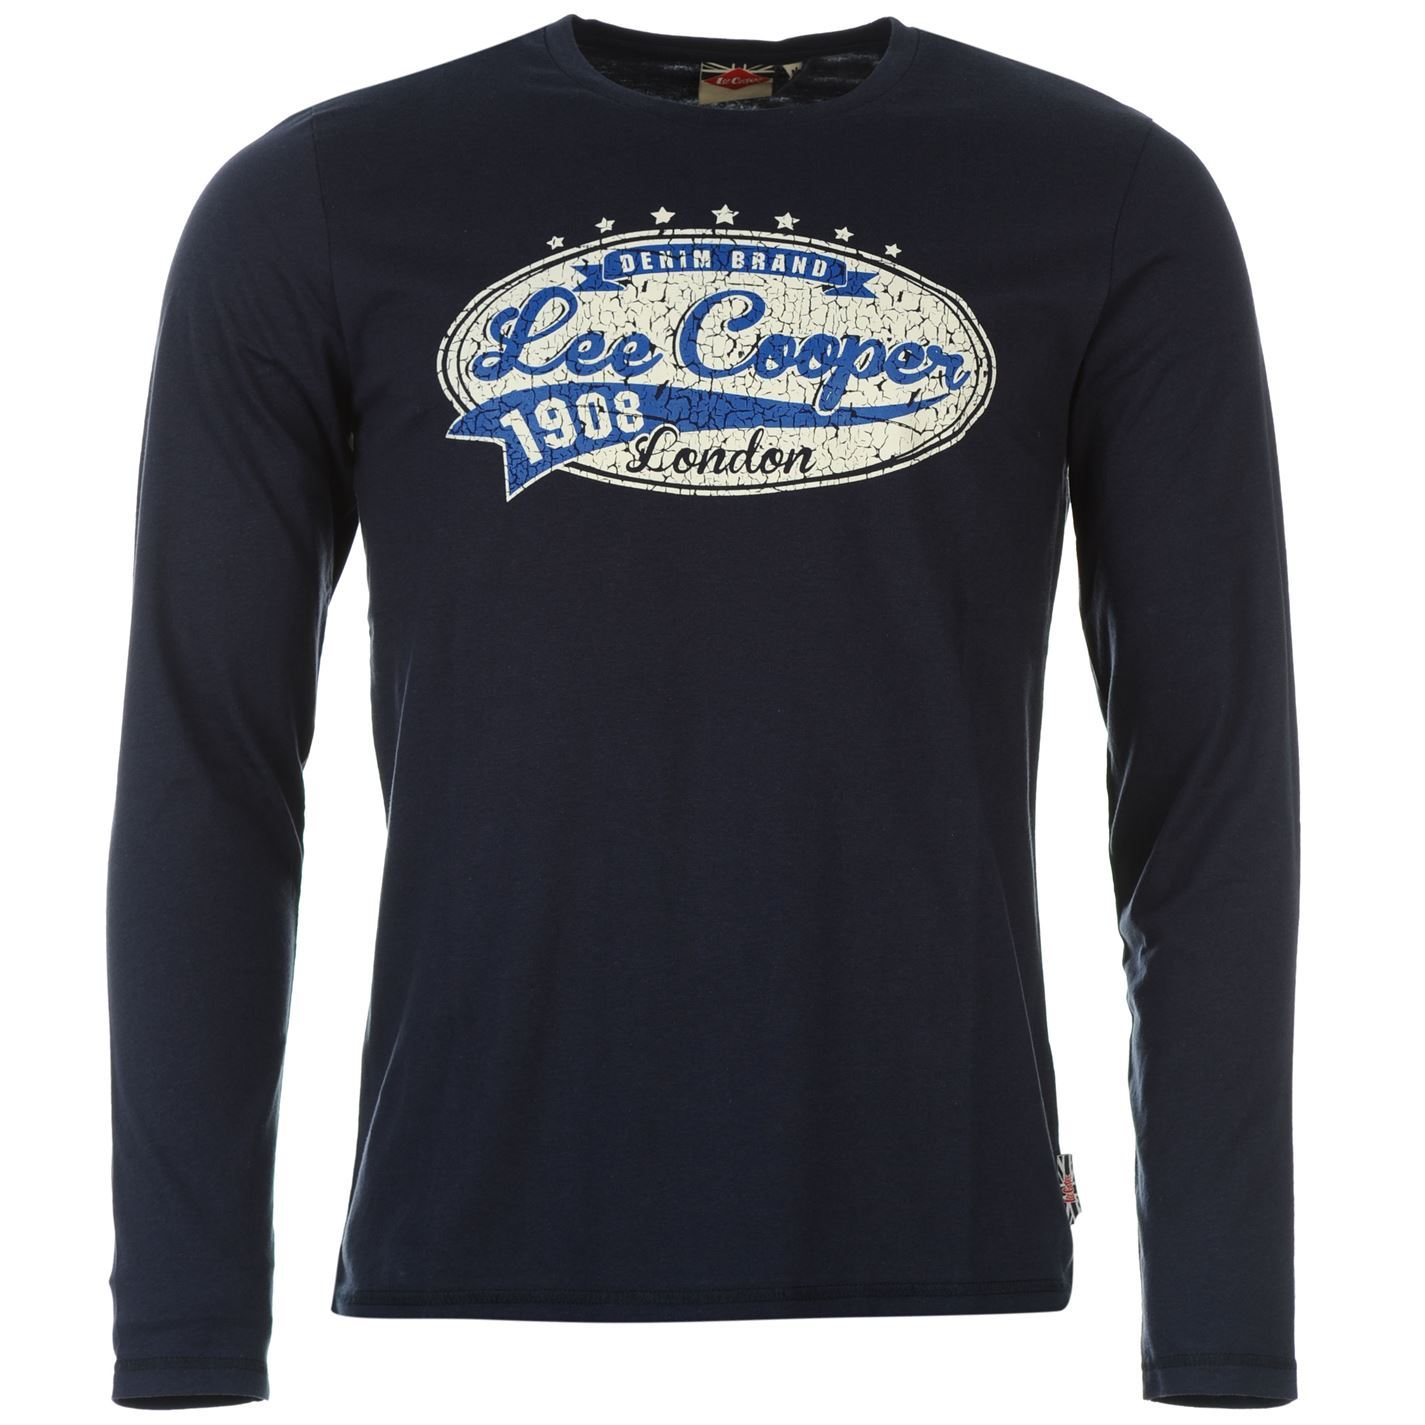 Lee cooper mens vintage long sleeve t shirt new ebay for Retro long sleeve t shirts